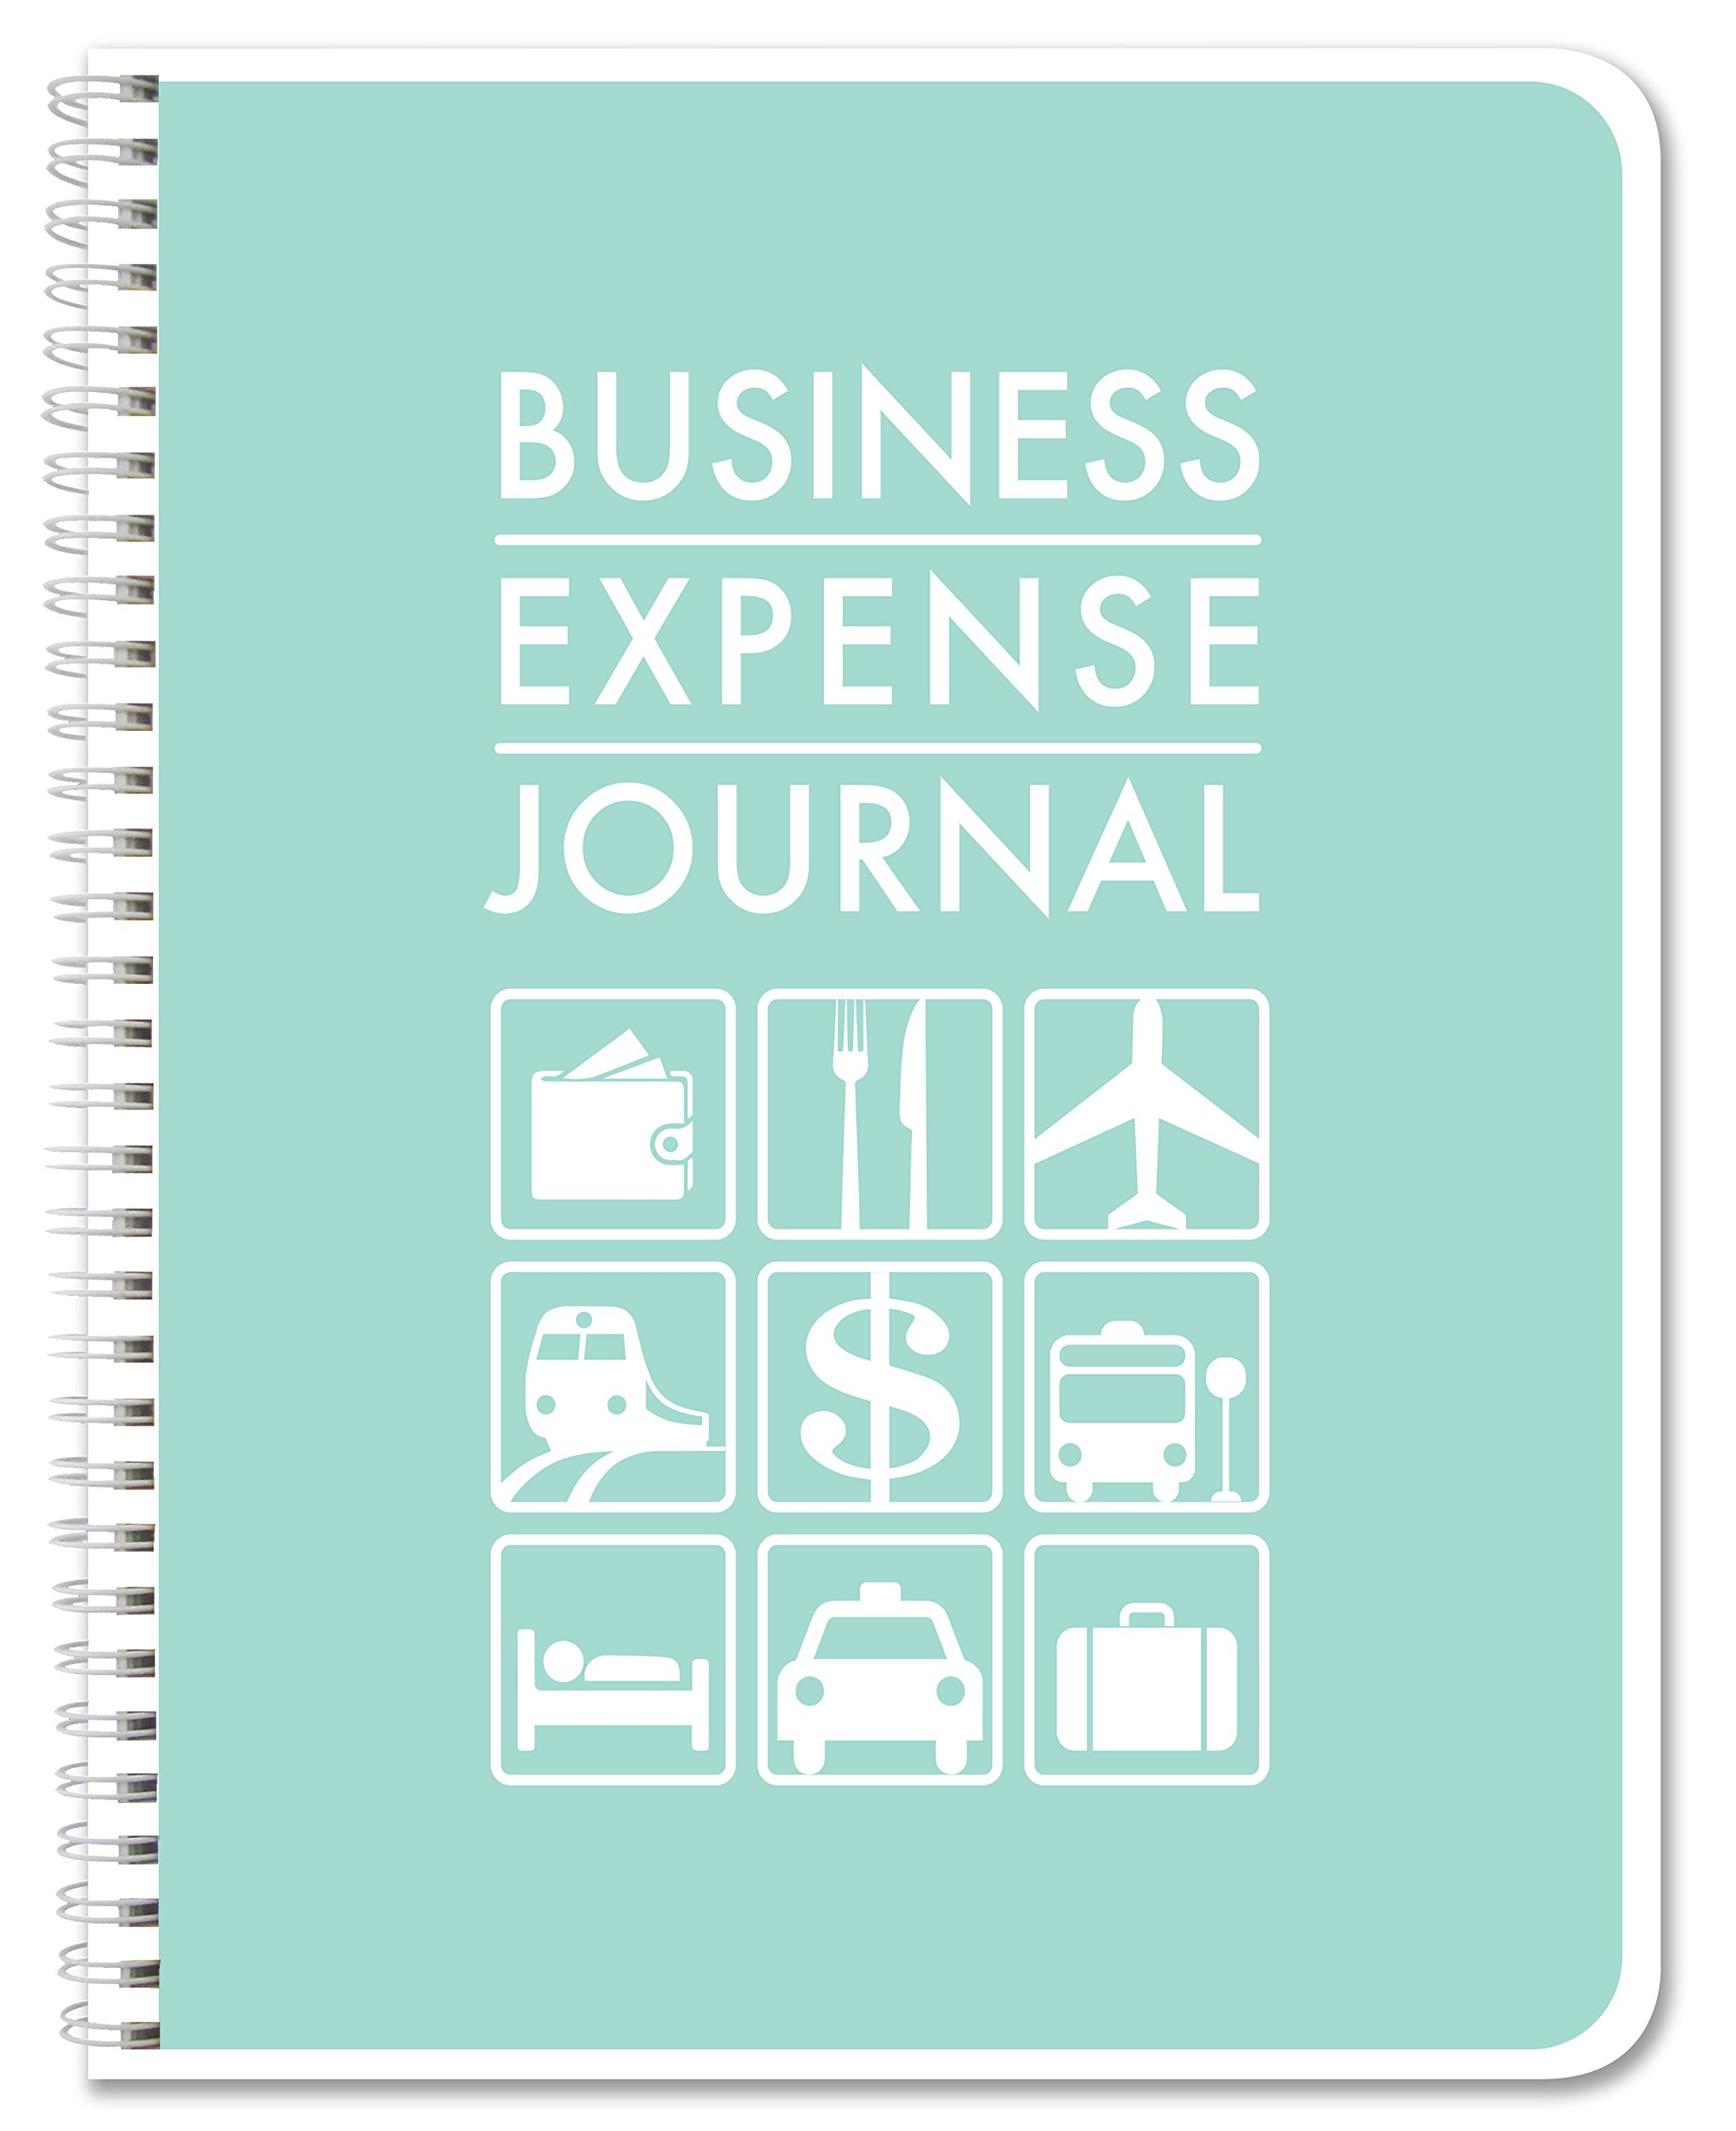 BookFactory Business Expense Journal/Expense Ledger Book/LogBook 110 pages 8.5'' x 11'' Wire-O (BUS-110-7CW-A(BusinessExpense))